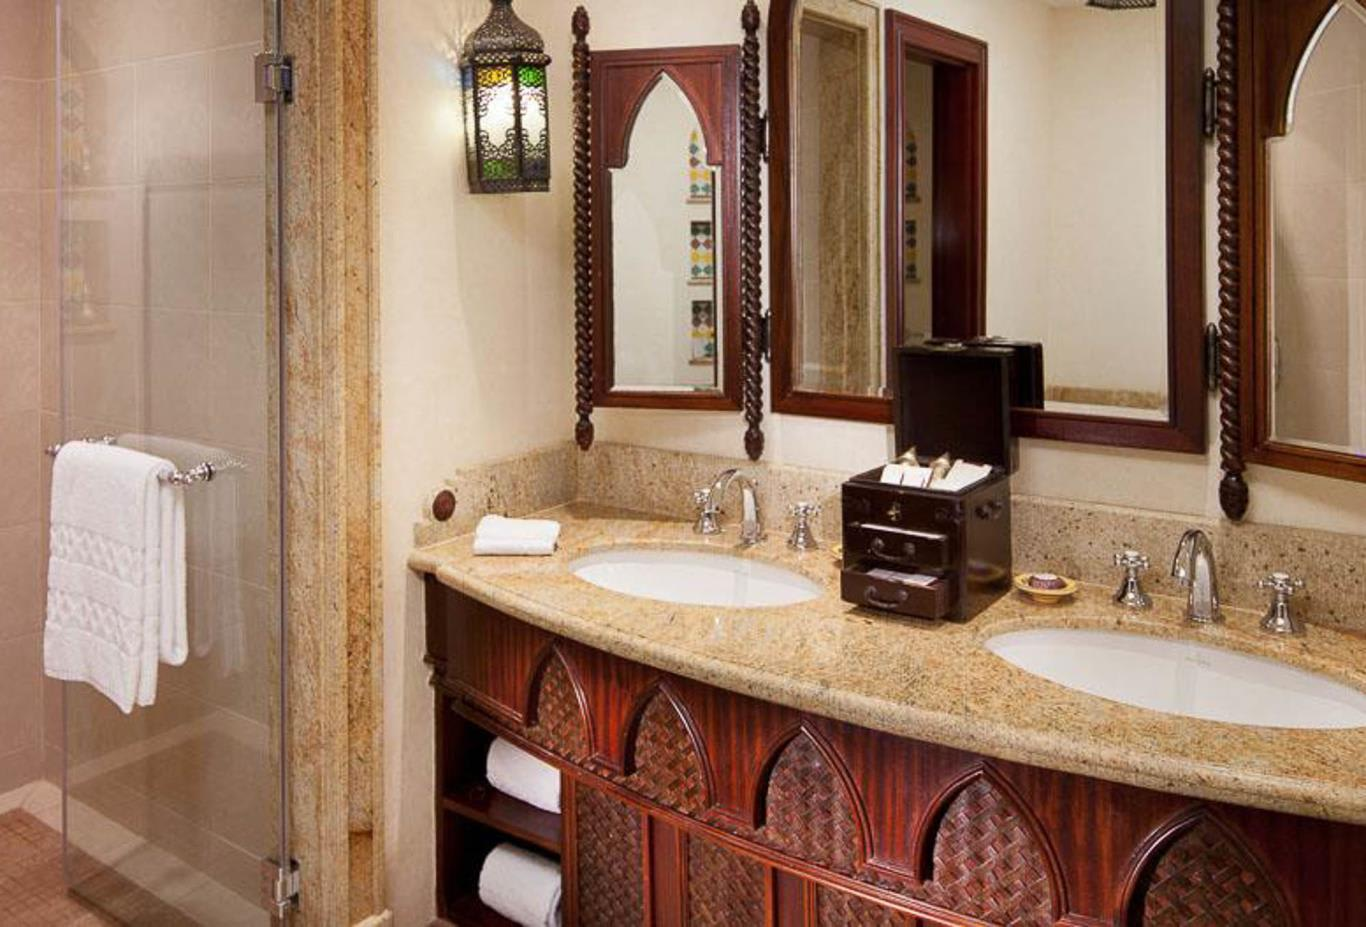 Executive Arabian Deluxe bathroom